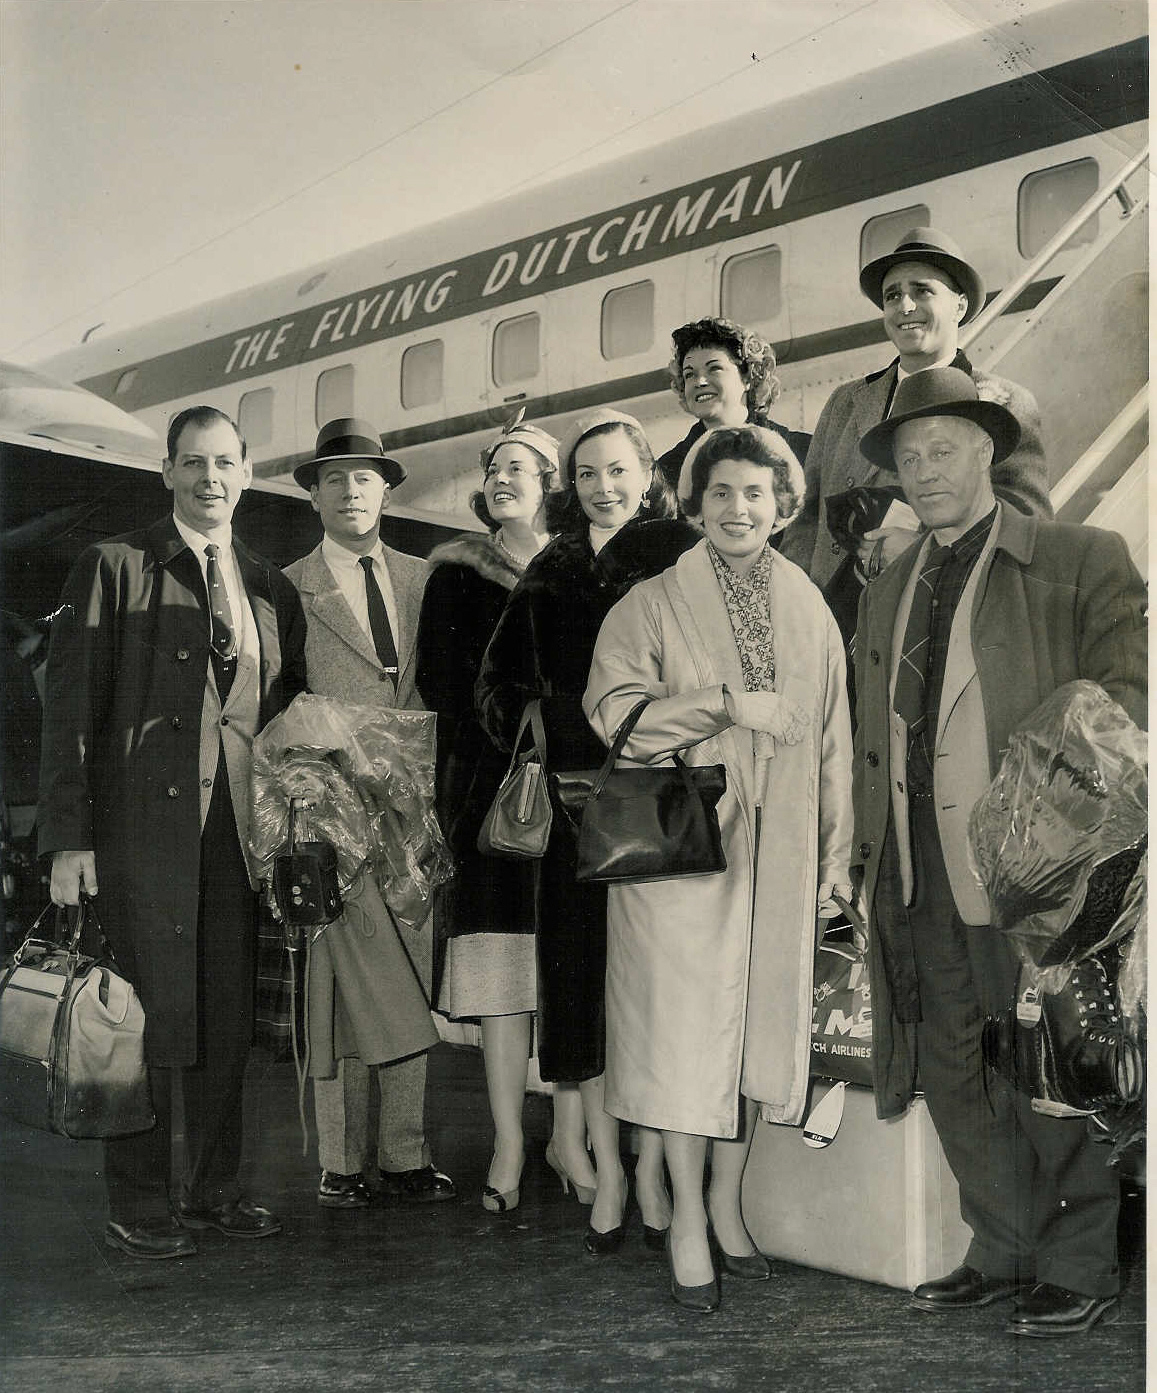 Jan found her wanderlust early in life and traveled the world from Africa to Europe, Russia, South America, Japan, and most of the United States. Shown here, third from the left, she and Edward are on their way to Europe.